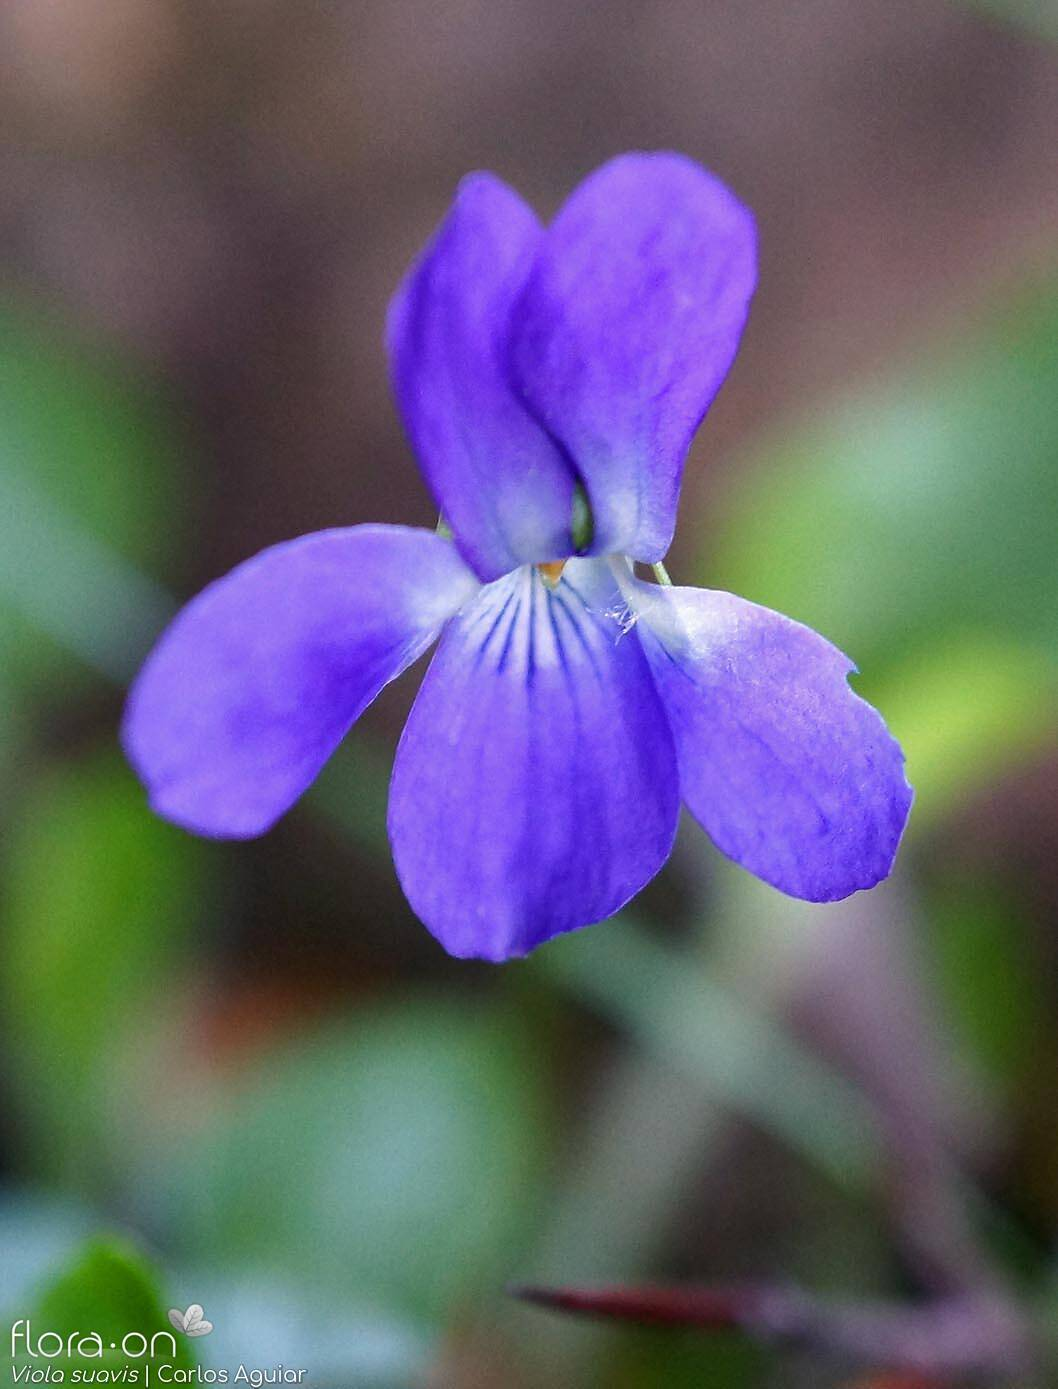 Viola suavis - Flor (close-up) | Carlos Aguiar; CC BY-NC 4.0